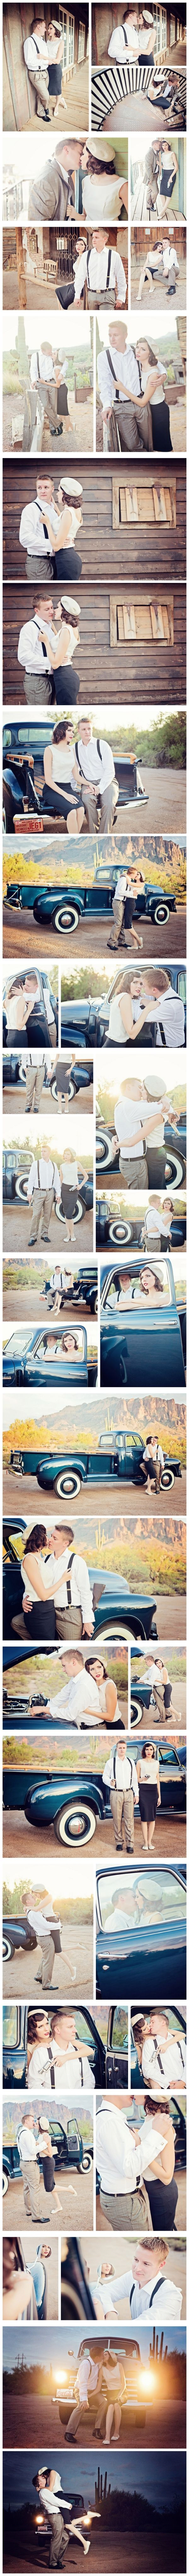 Bonnie and Clyde Themed Engagement Shoot